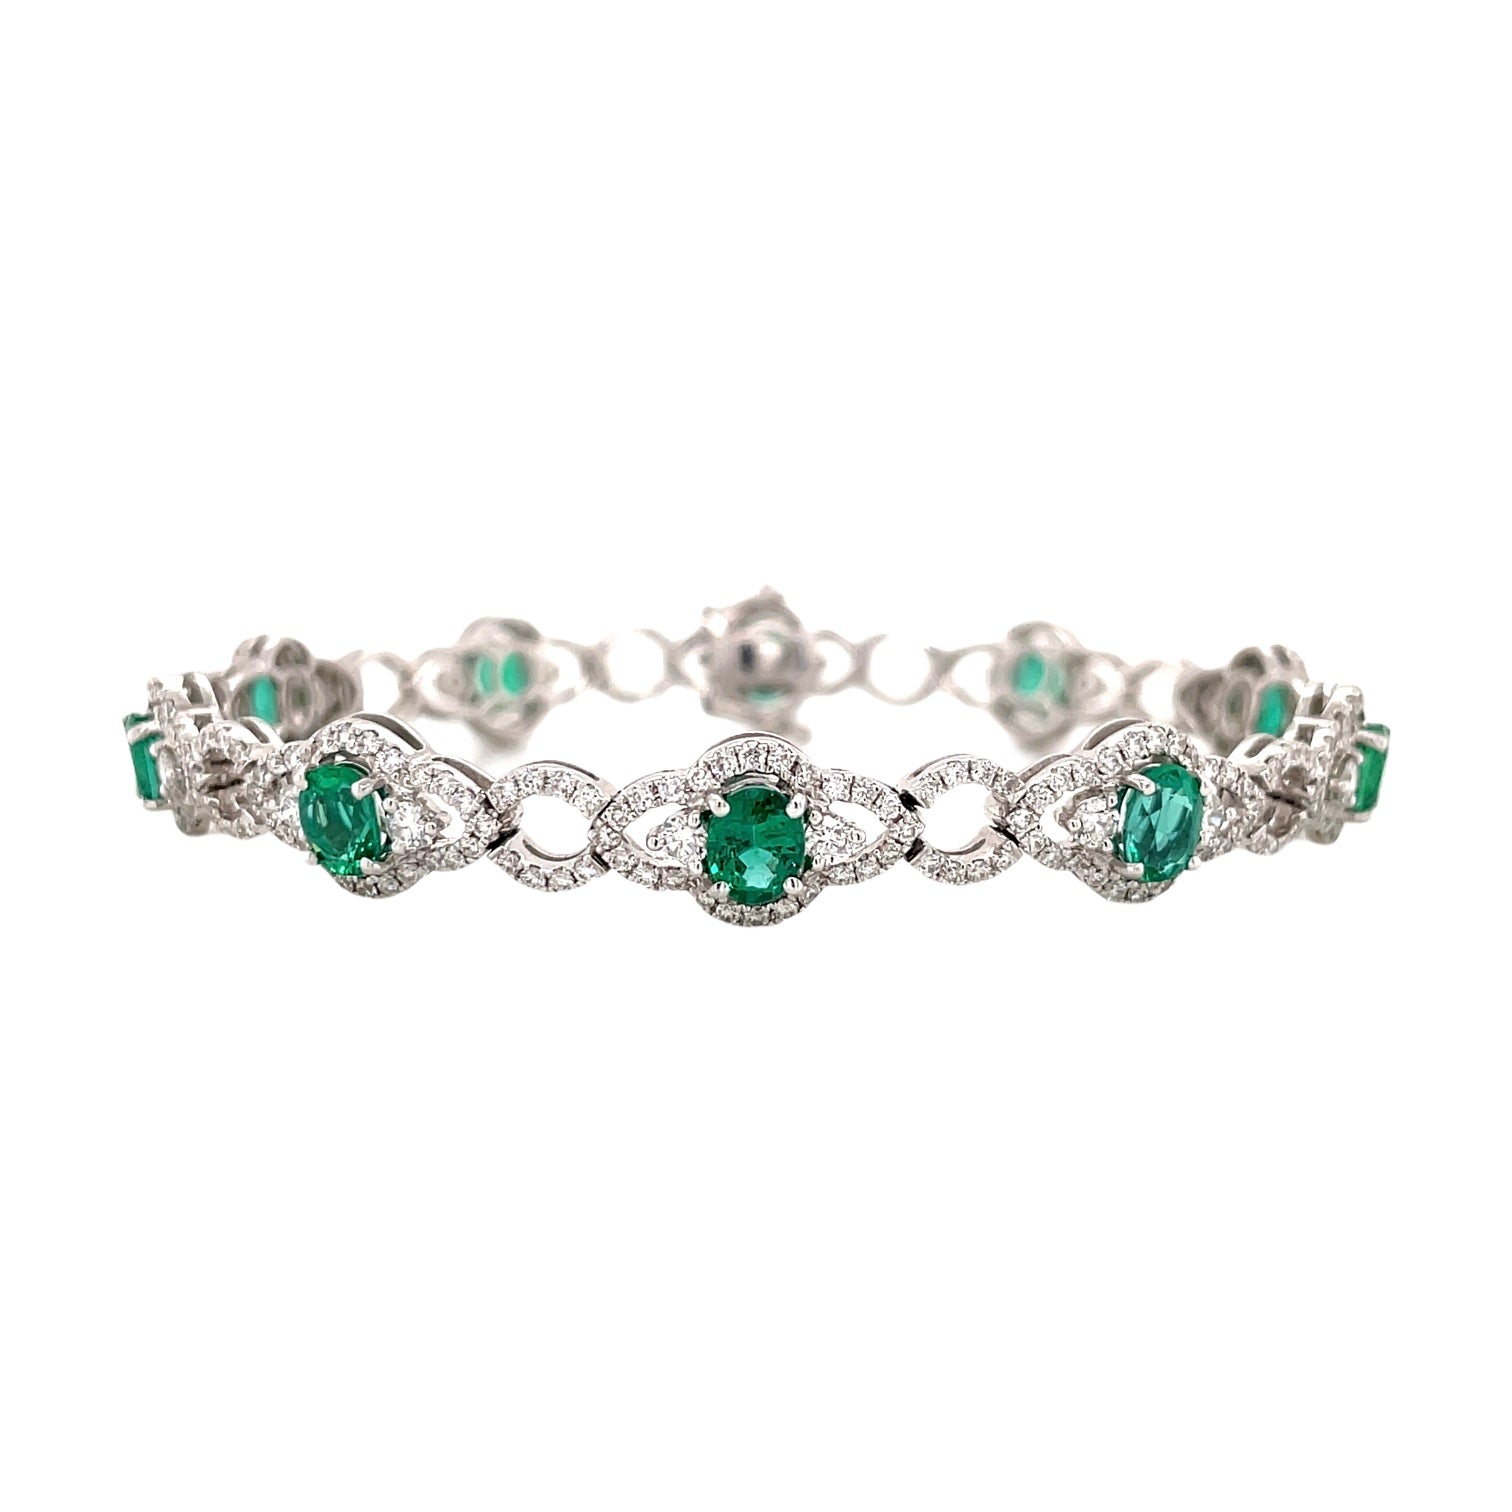 Emerald & Diamond Link Bracelet